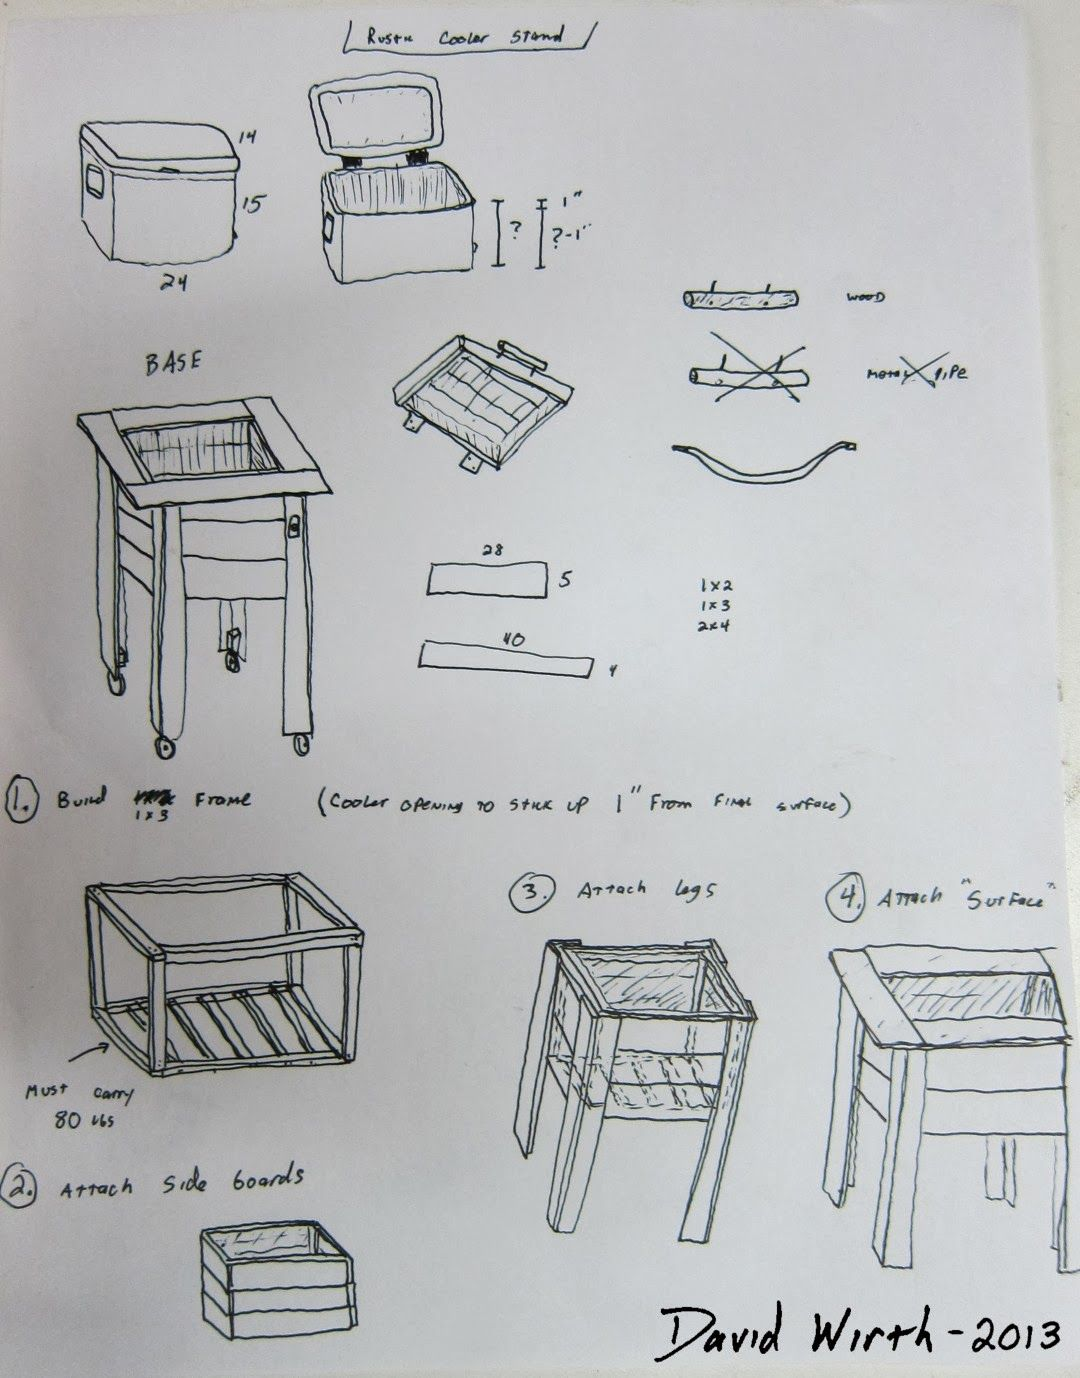 Outdoor wood pallet furniture 3 diy pallet projects with - Plans For Rustic Wood Pallet Cooler Stand Jpg Plans For Ice Cooler Chest